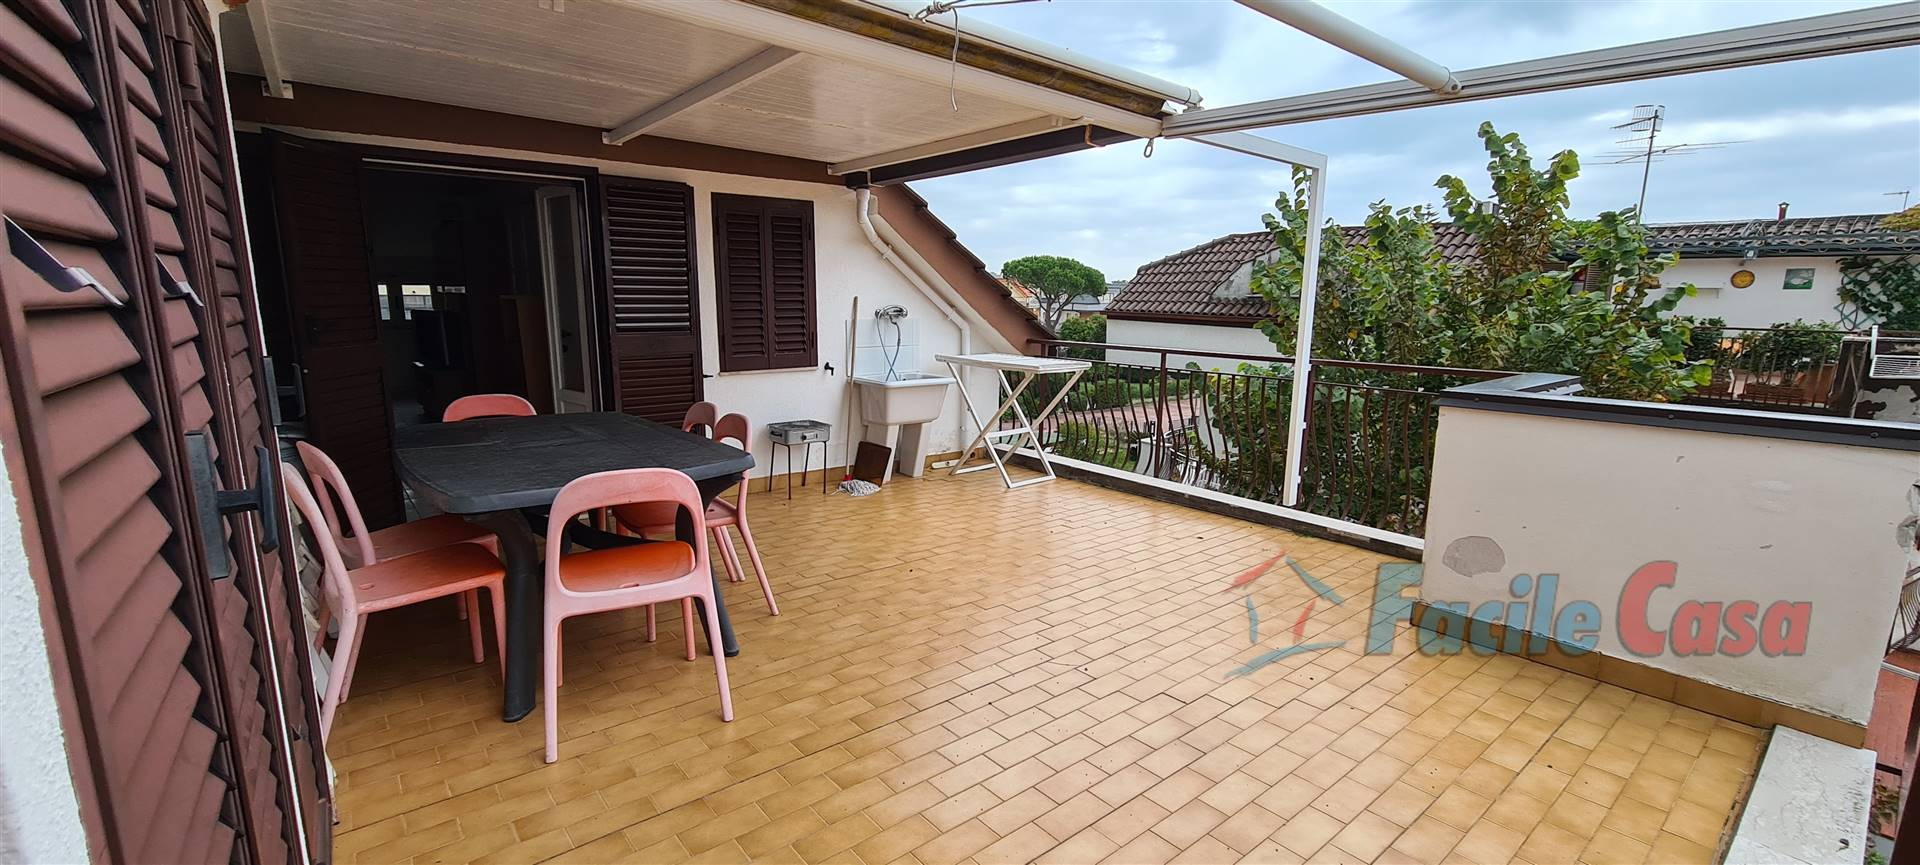 GIANOLA, FORMIA, Penthouse for sale of 50 Sq. mt., Good condition, Heating Individual heating system, Energetic class: G, placed at 2° on 2, composed